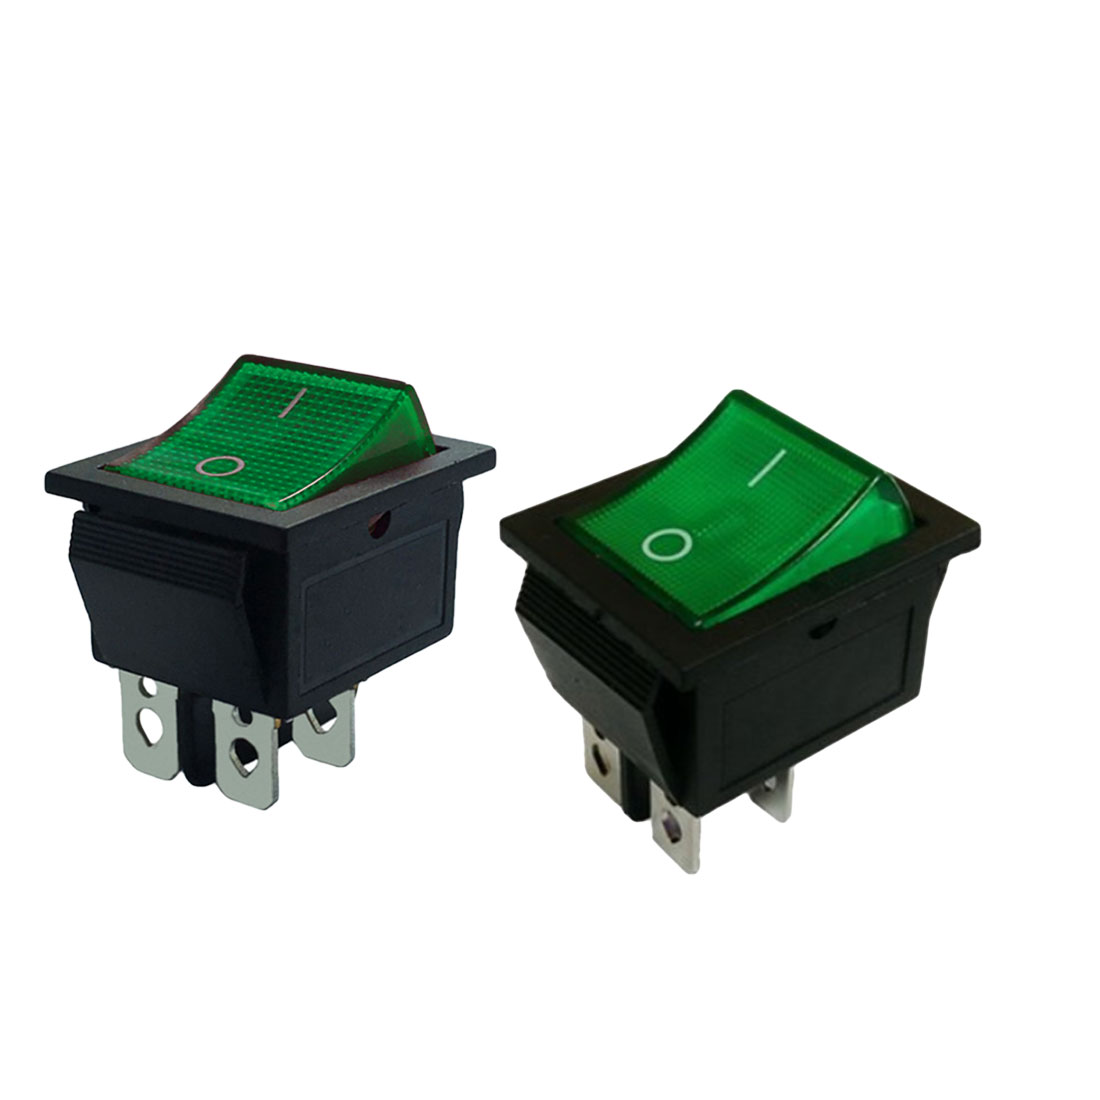 Logical 10a/220v Ac Green Red 1pcs Promotion Light 4 Pin Dpst On/off Snap In Boat Rocker Switch To Ensure A Like-New Appearance Indefinably Lighting Accessories Lights & Lighting